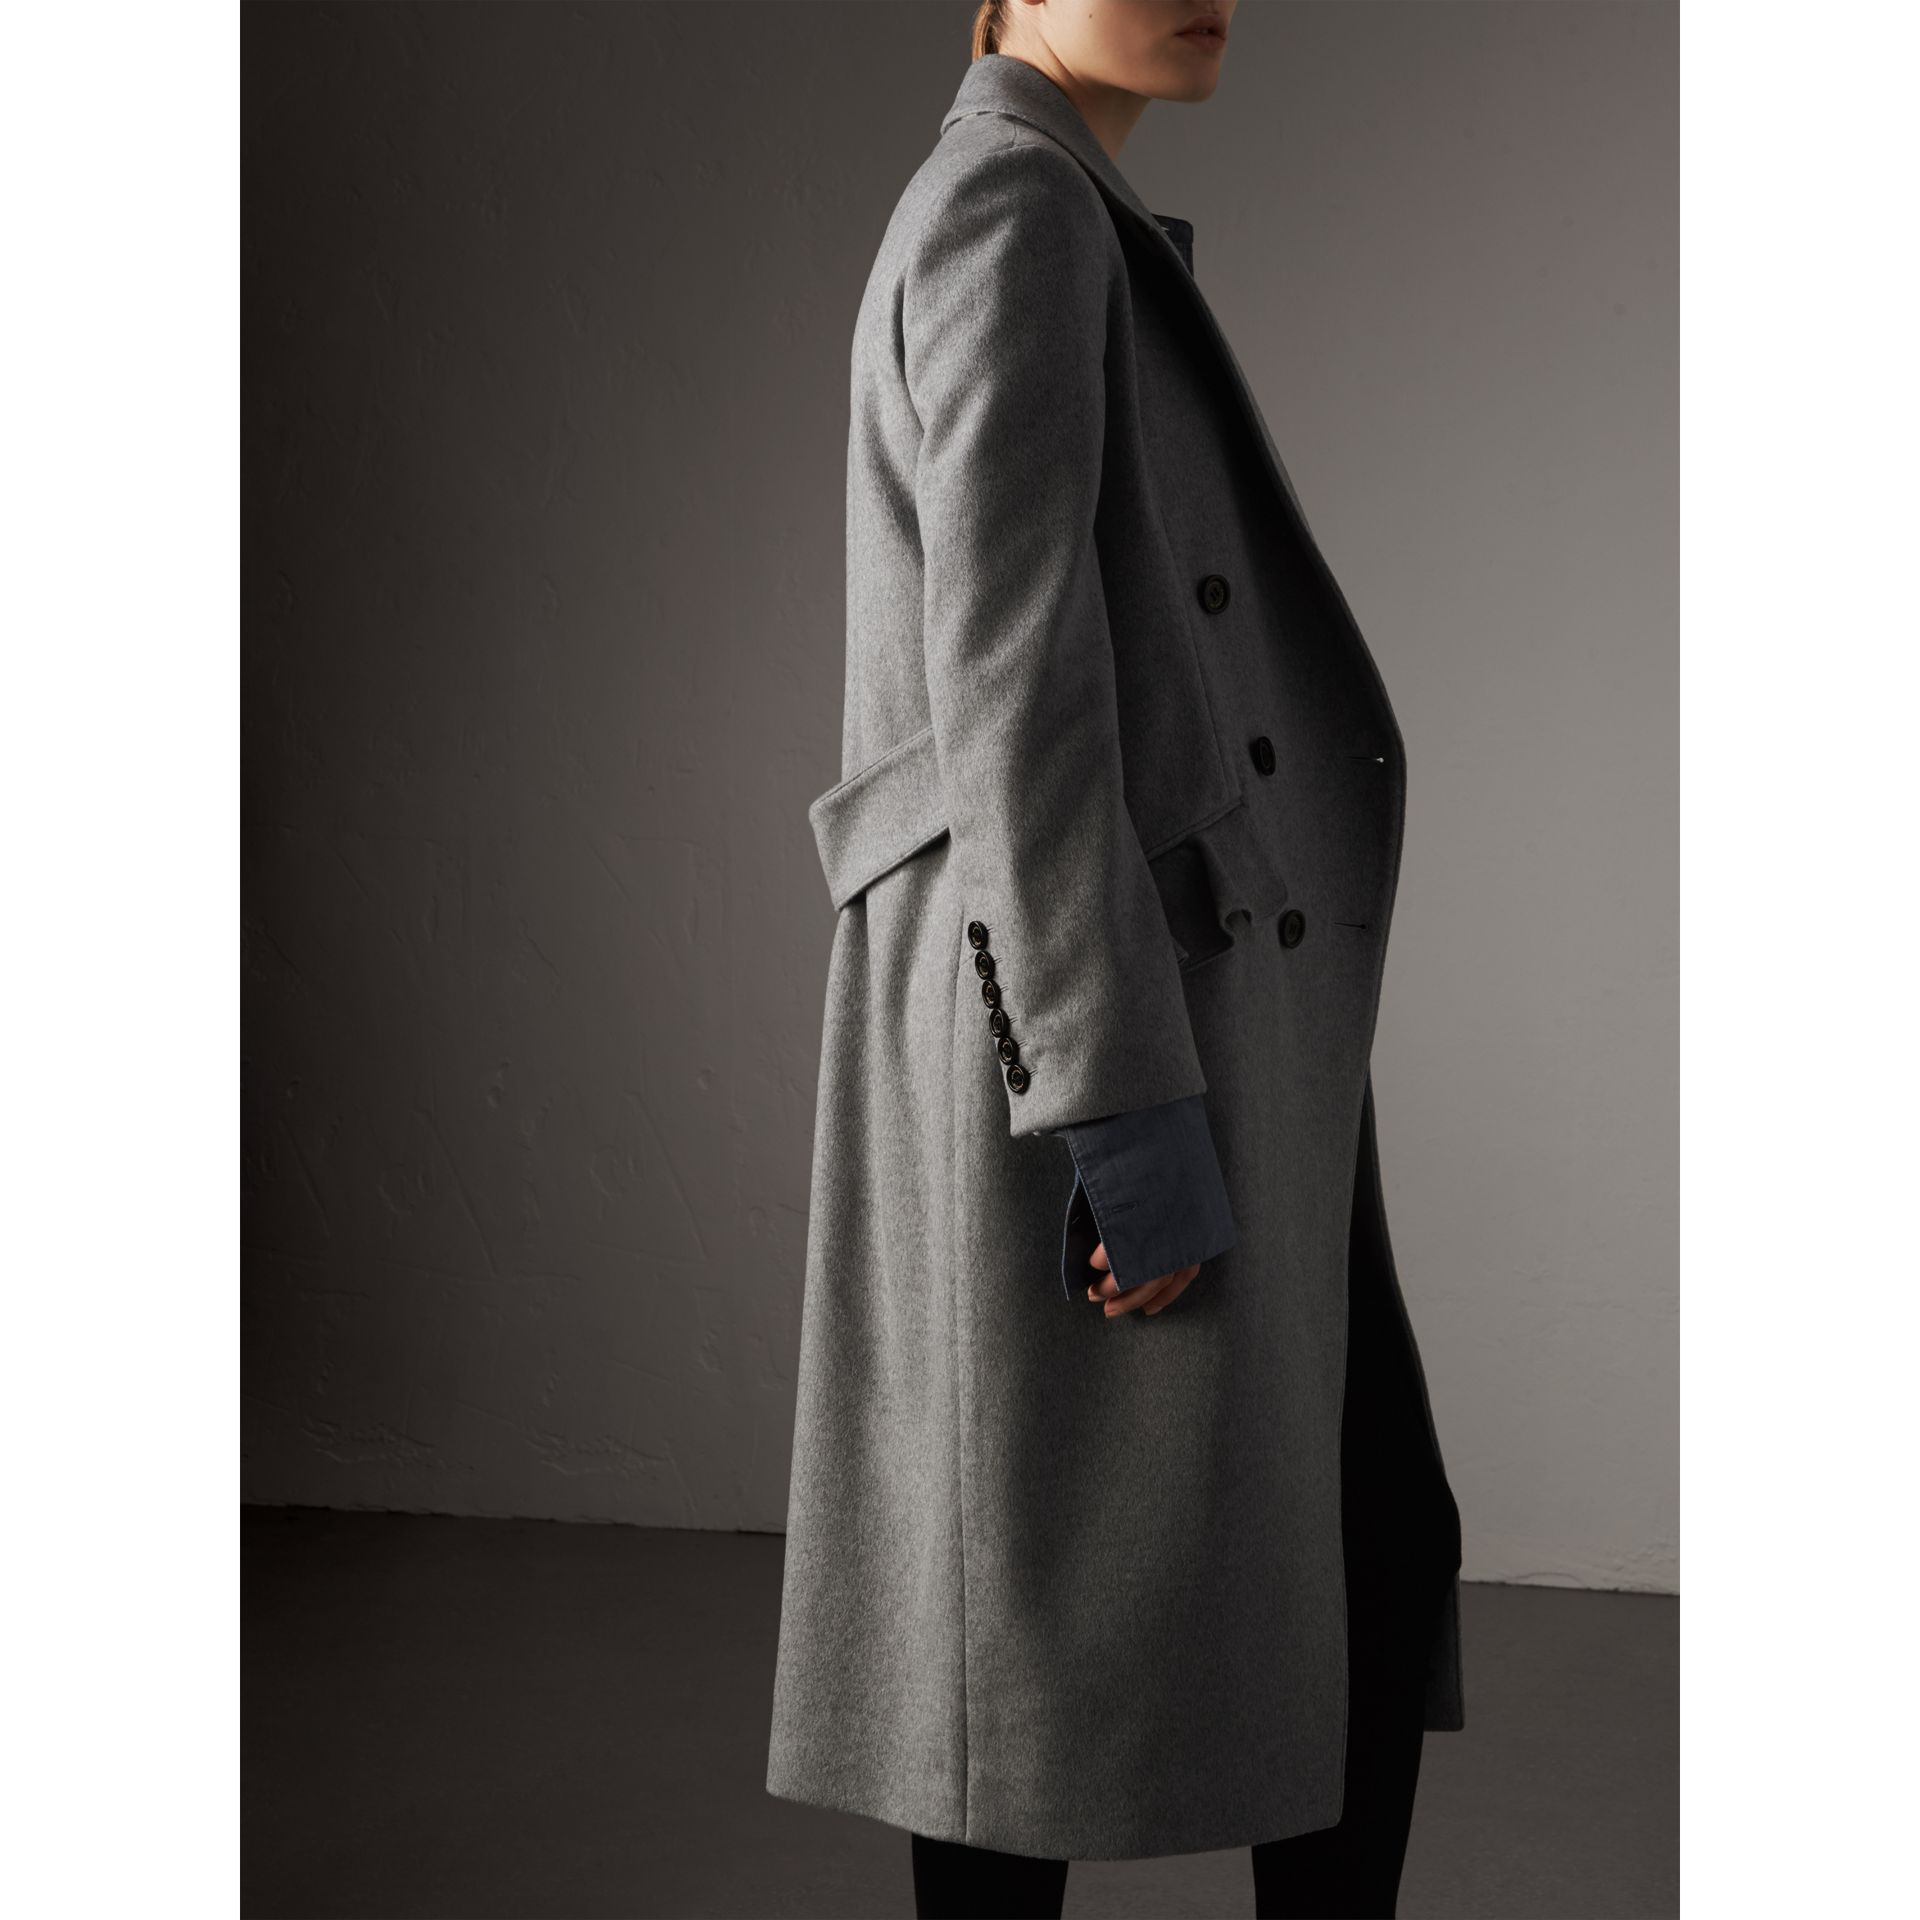 Ruffle Detail Wool Cashmere Tailored Coat in Pale Grey Melange - Women | Burberry United States - gallery image 3